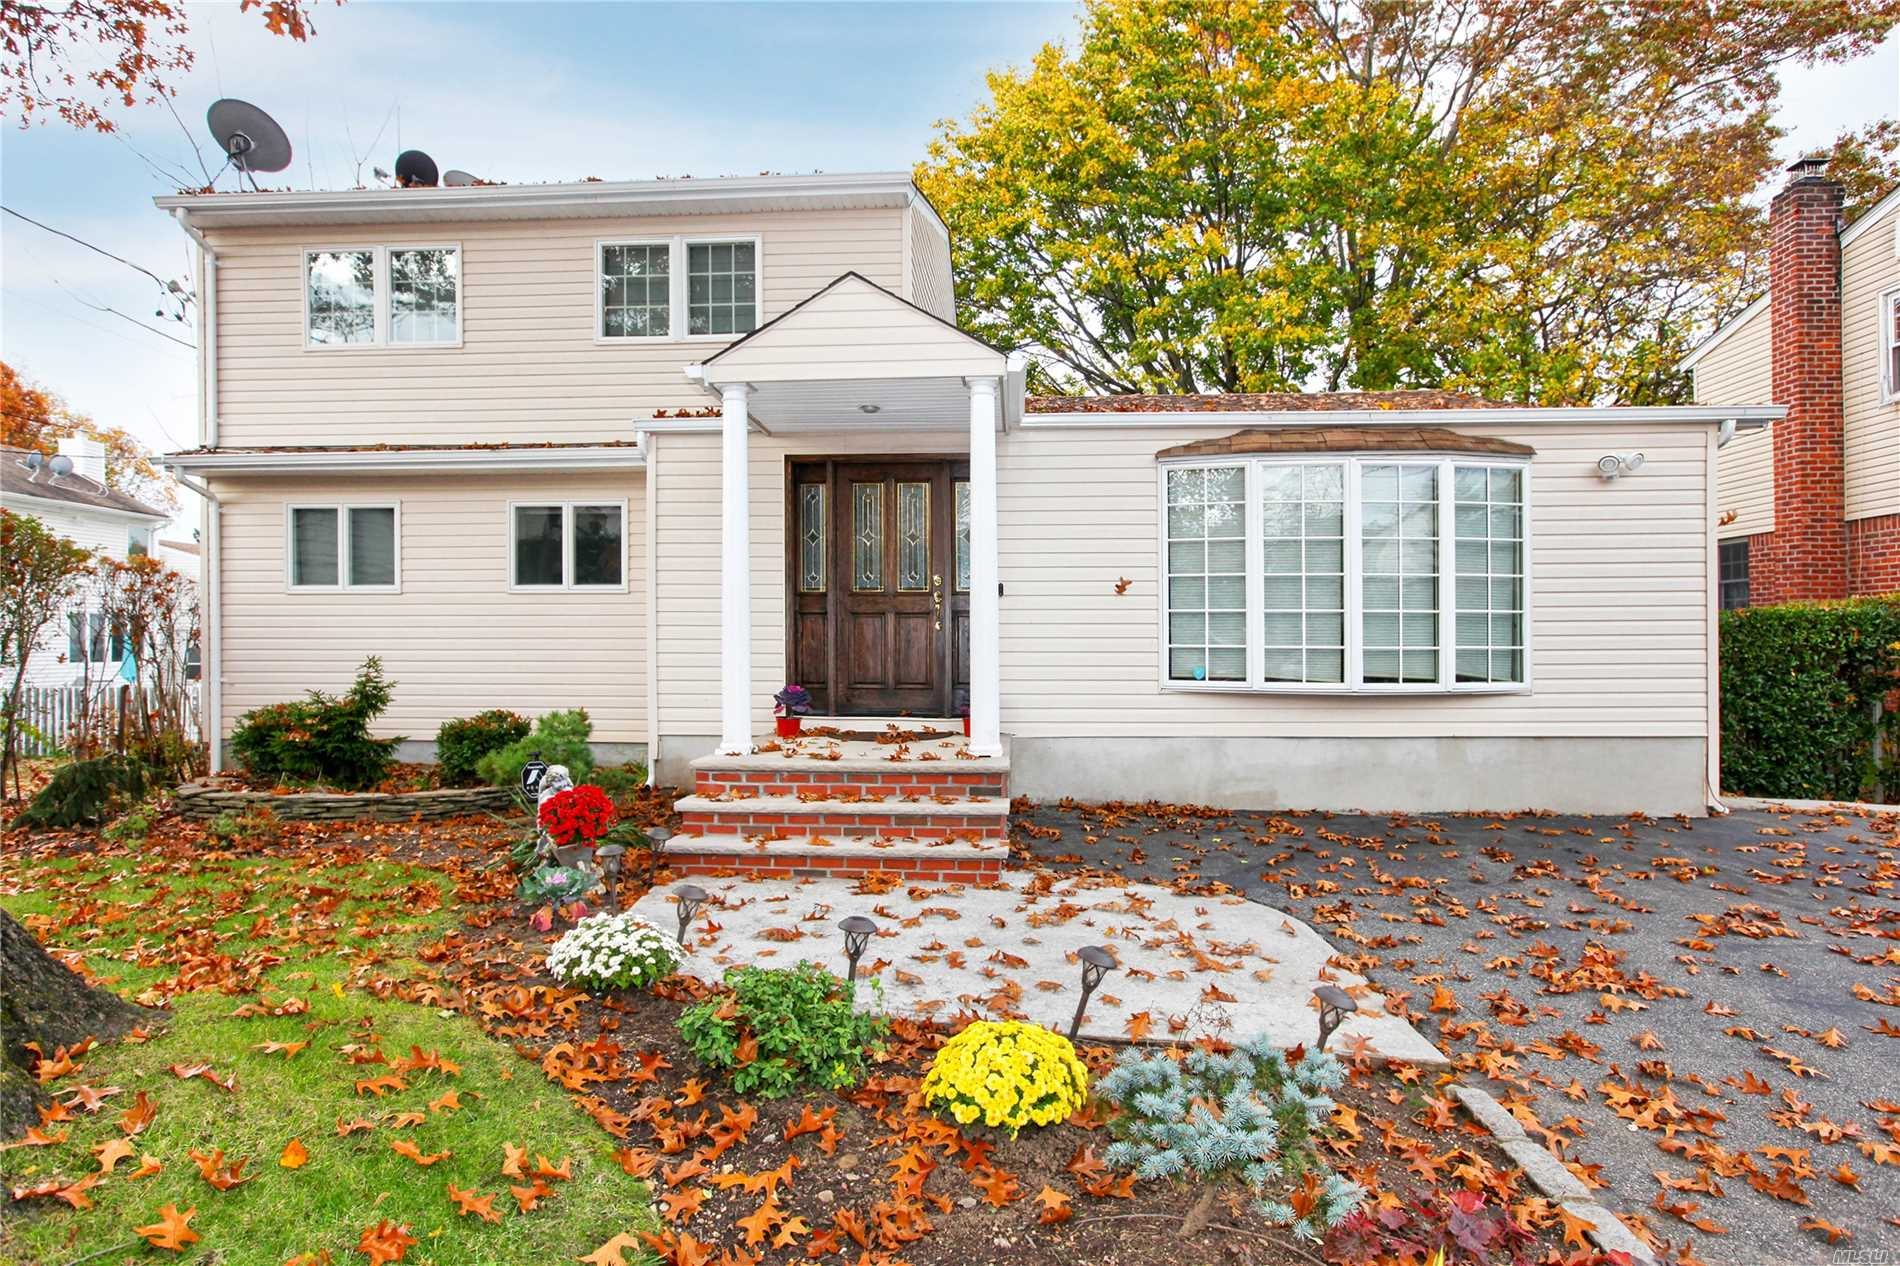 Beautiful 5 Br, 3.5 Bath Home In The Heart Of Albertson. 2 Zone Heat, 3 Zone Cac,  5 Zone Sprinkler System New Appliances (Stove, Dishwasher, Refrigerator, Washer, Dryer) New Insulation In 2nd Floor Attic New Led Recessed Lighting New Chandelier, 200 Amps, 2019 Taxes - $800 Lower